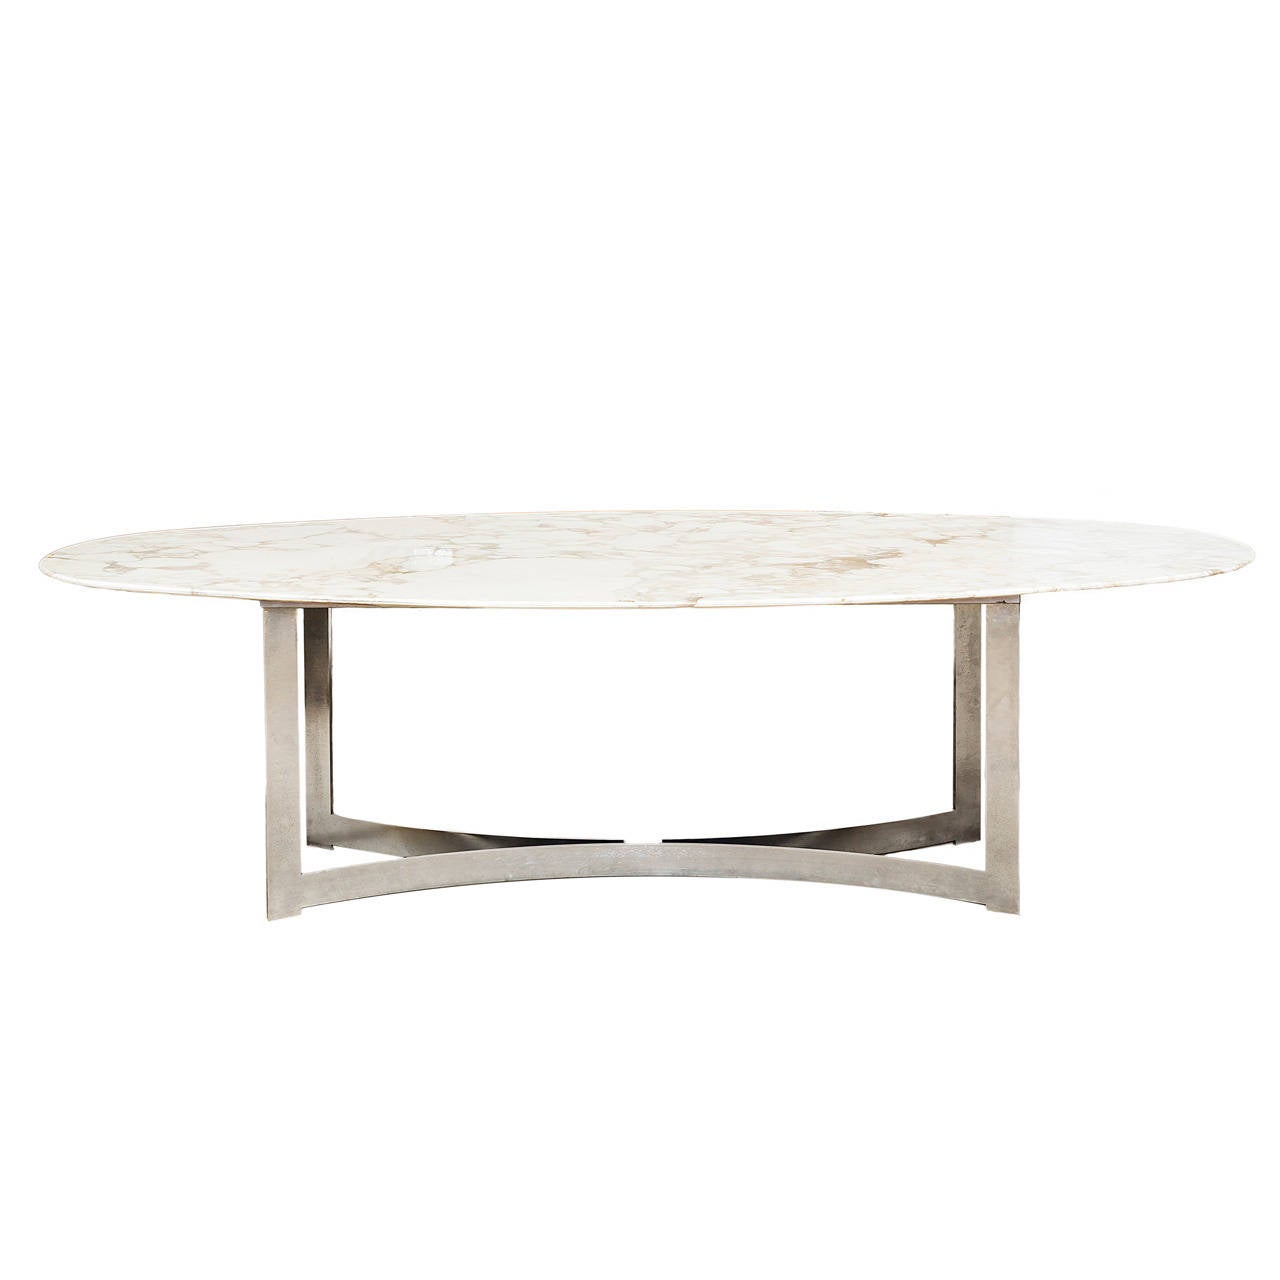 Oval marble top dining table at 1stdibs for Best dining room tables